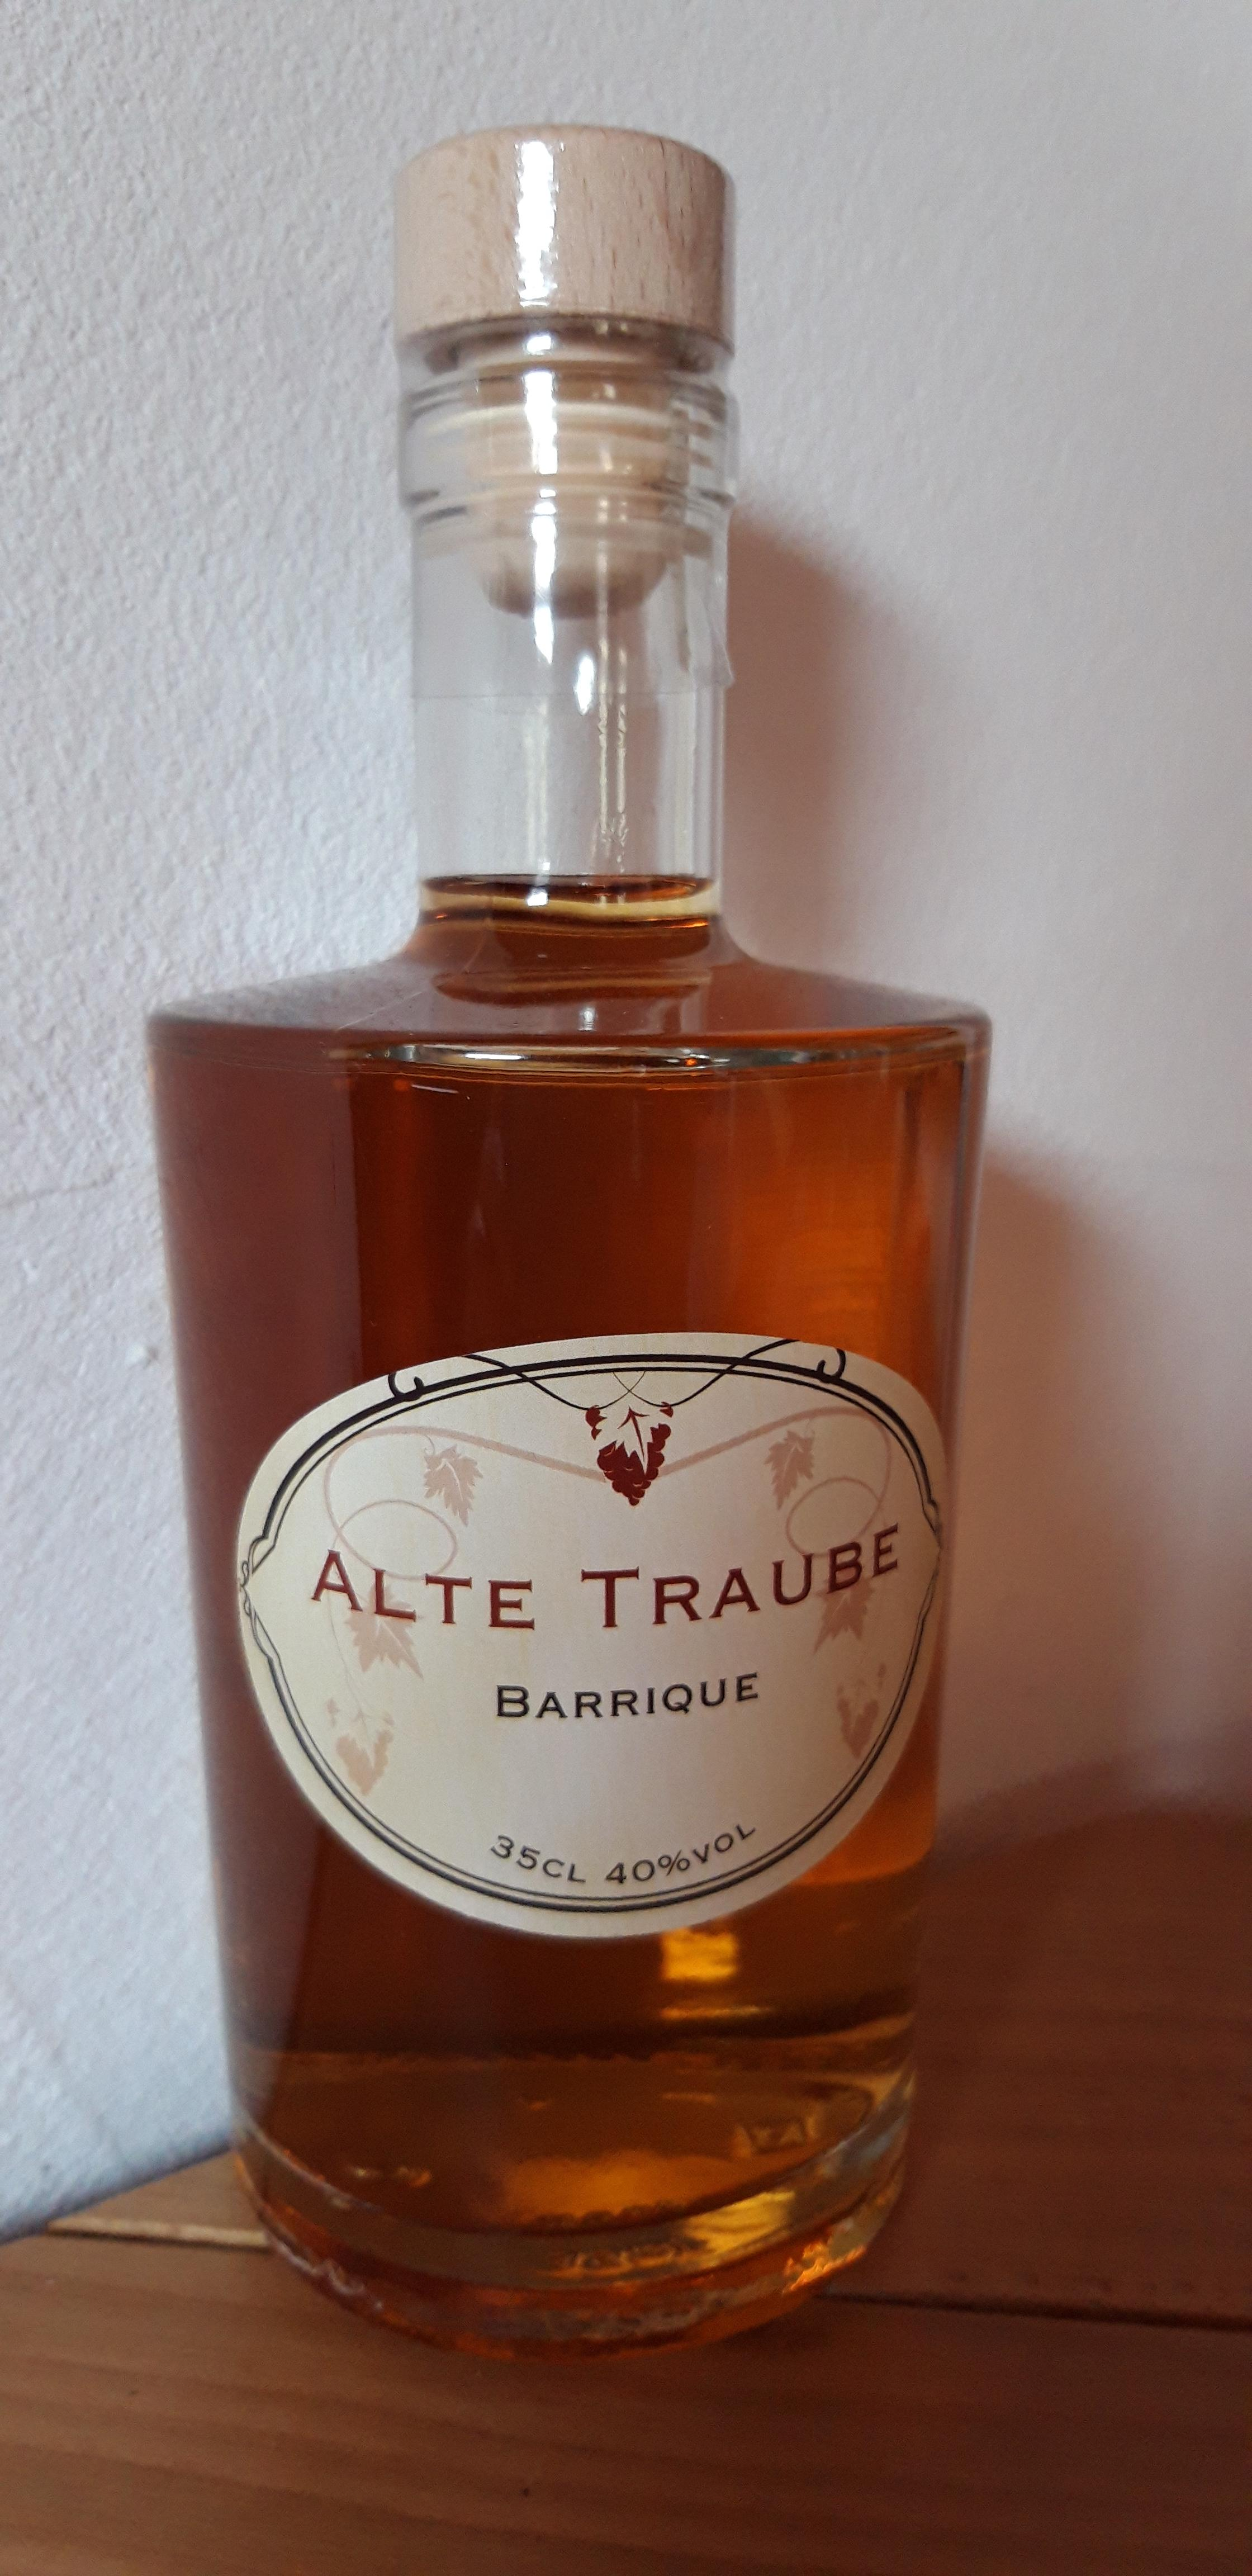 Alte Traube Barrique